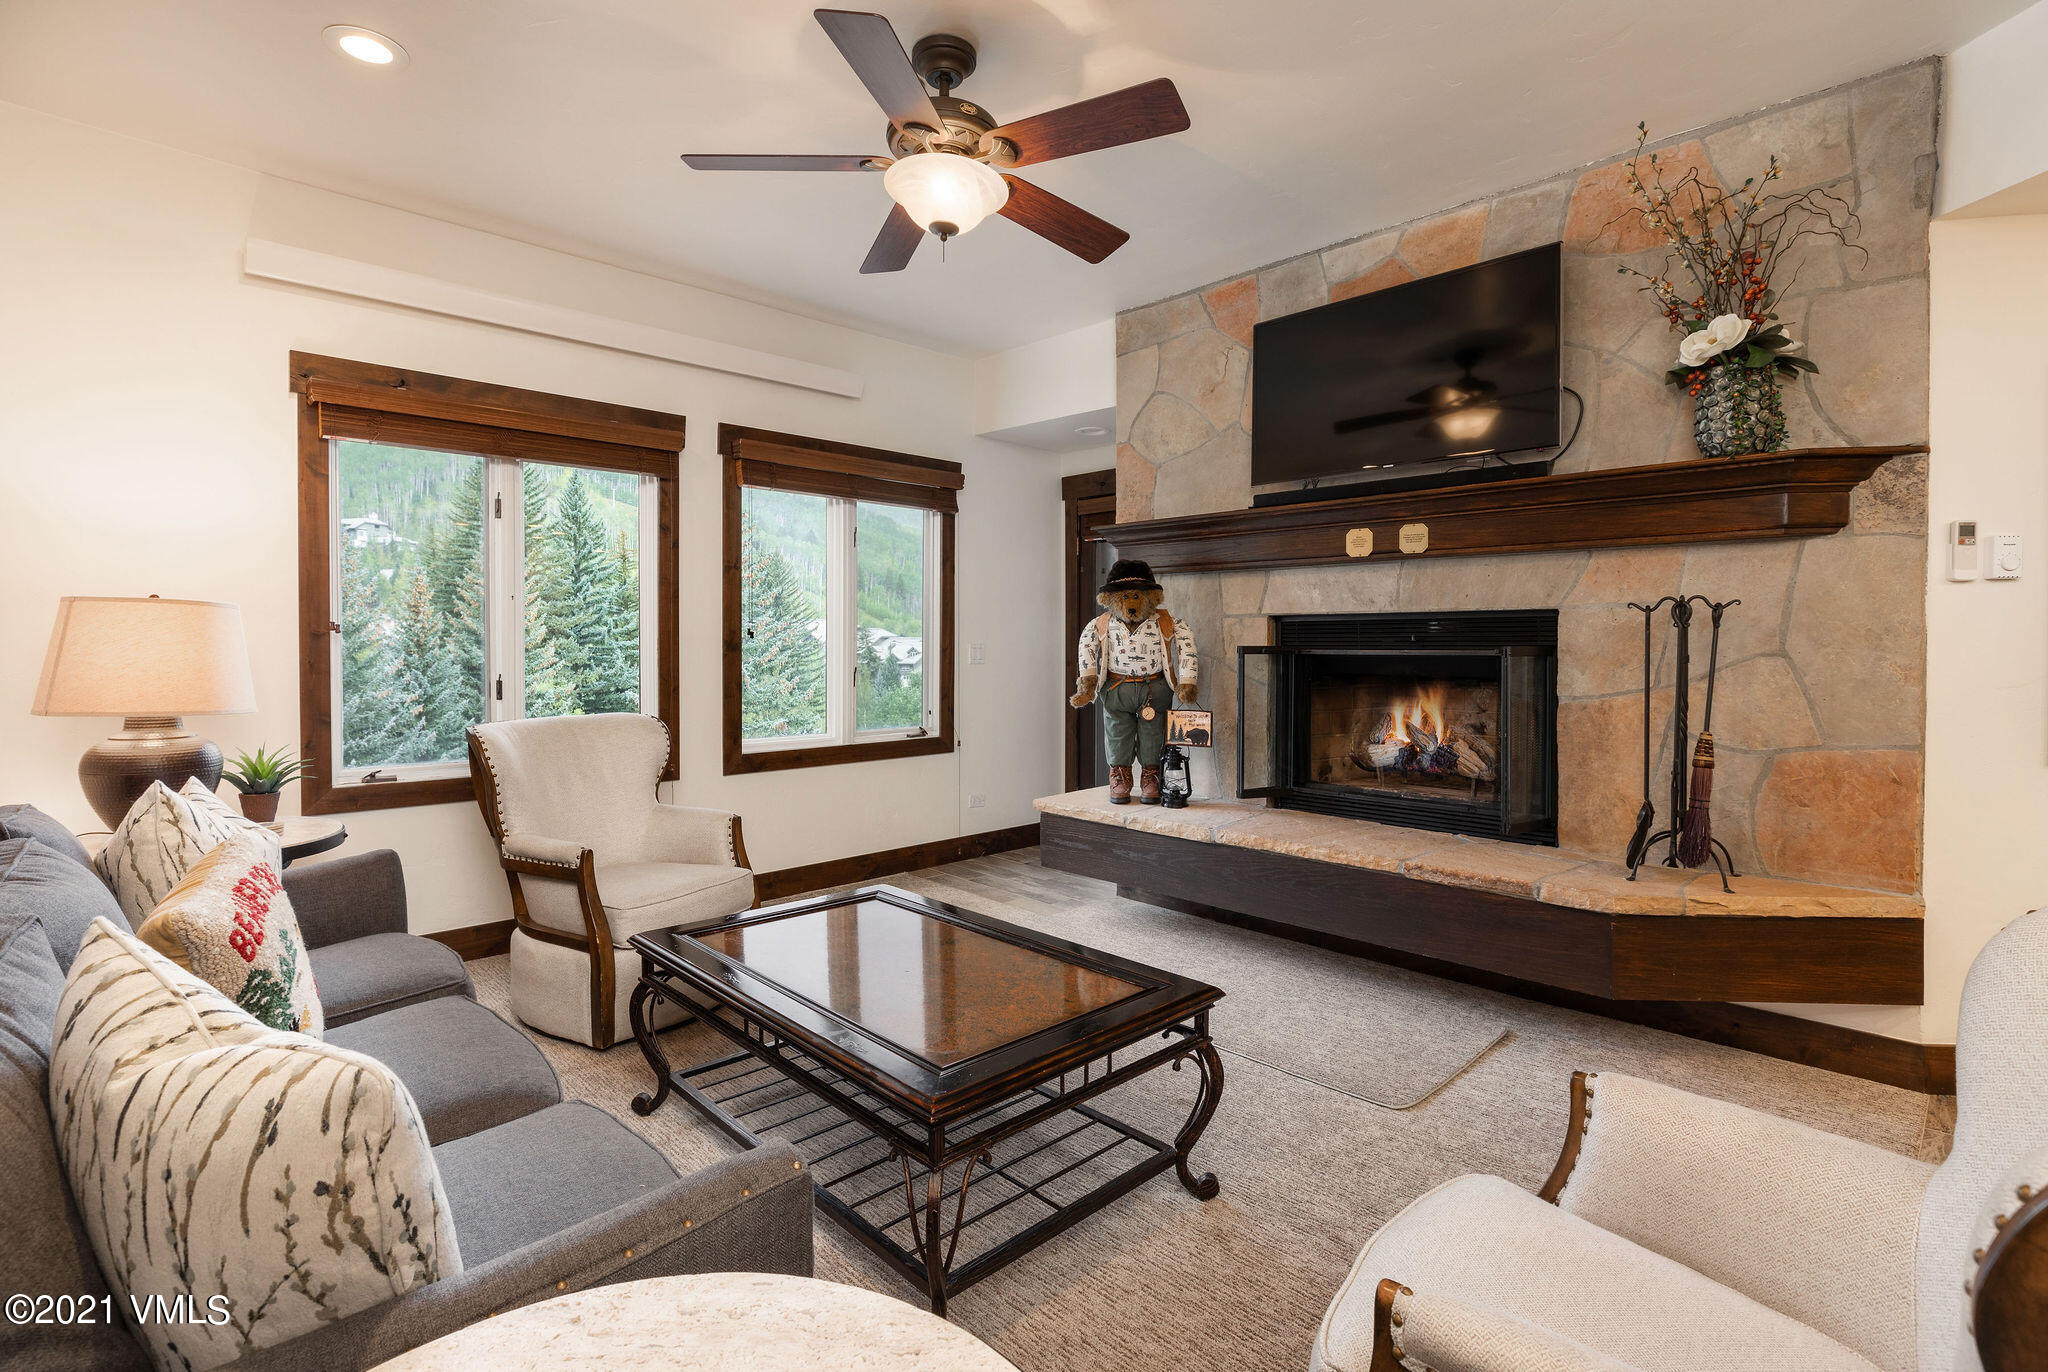 Gorgeous remodel on this 2-bedroom, 2-bath with all new doors, floors, counters, appliances, you name it. Close proximity to front desk, garage, amenities and village. Ski-in and out.